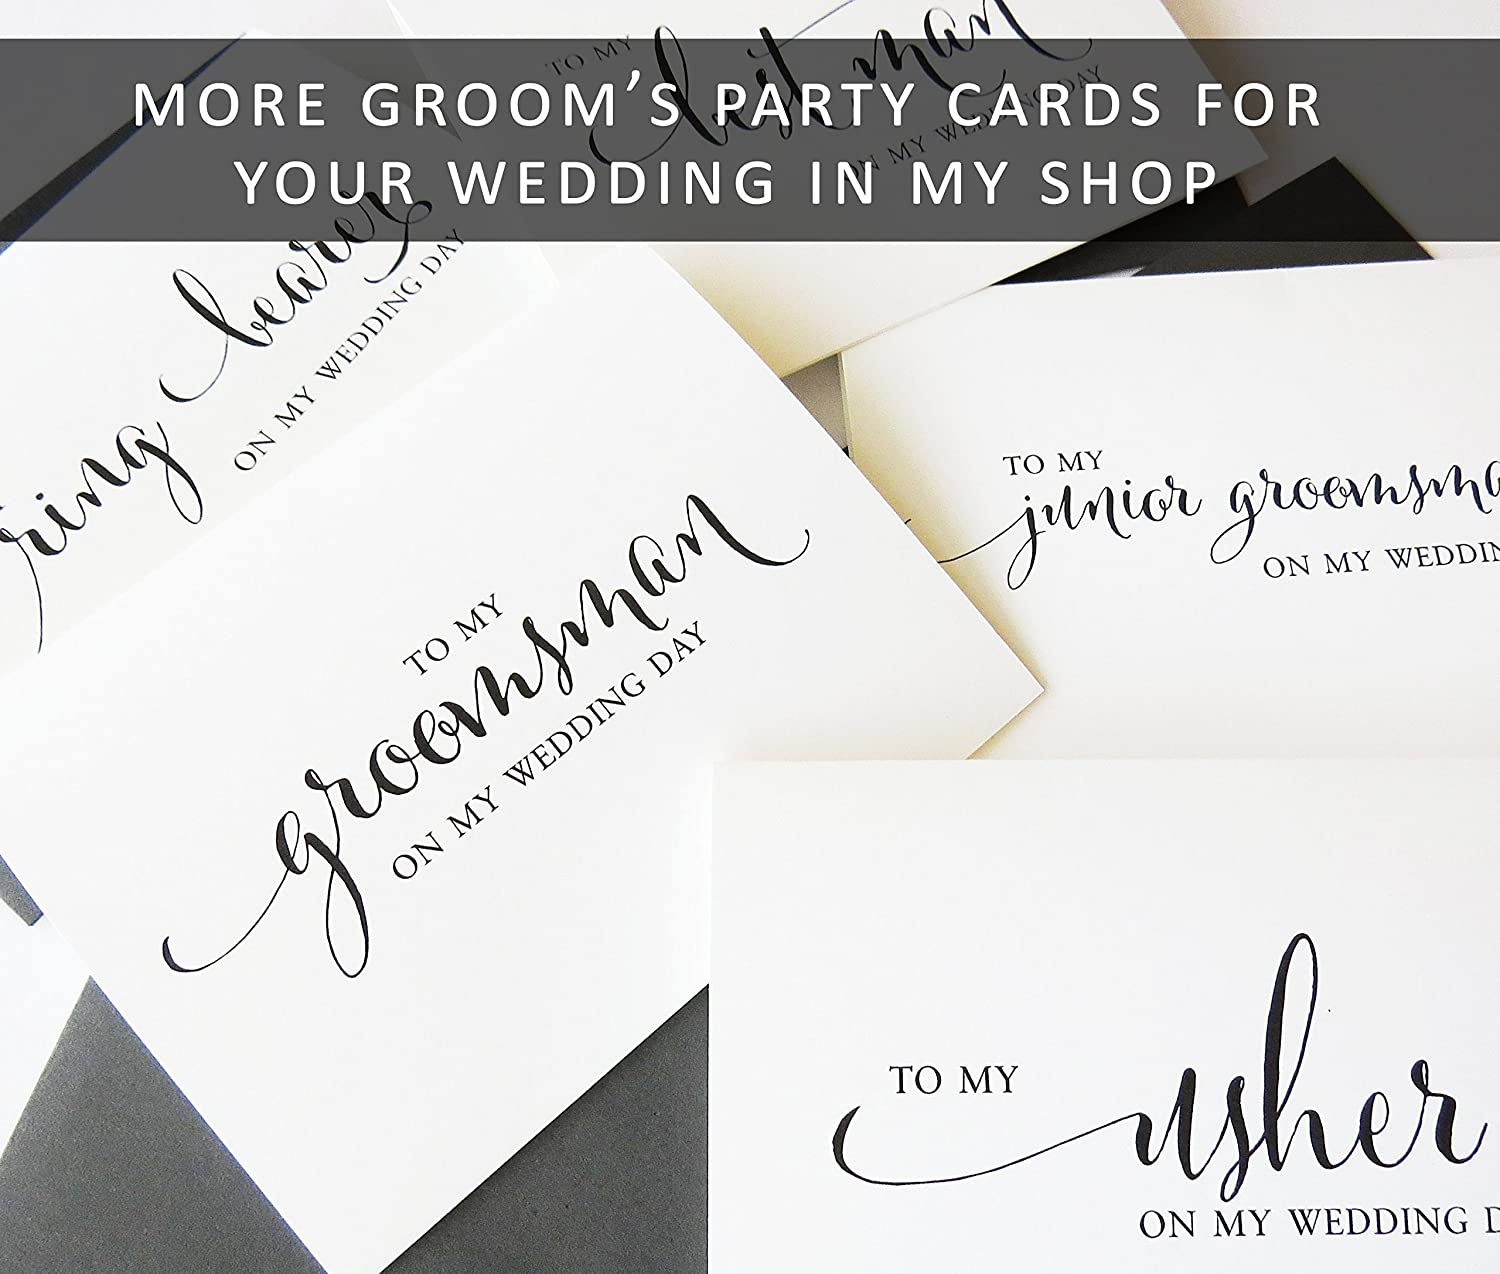 amazoncom to my bride on our wedding day to my groom on our wedding day groom gift bridal card from husband to wife day of gift 1 or 2 greetings